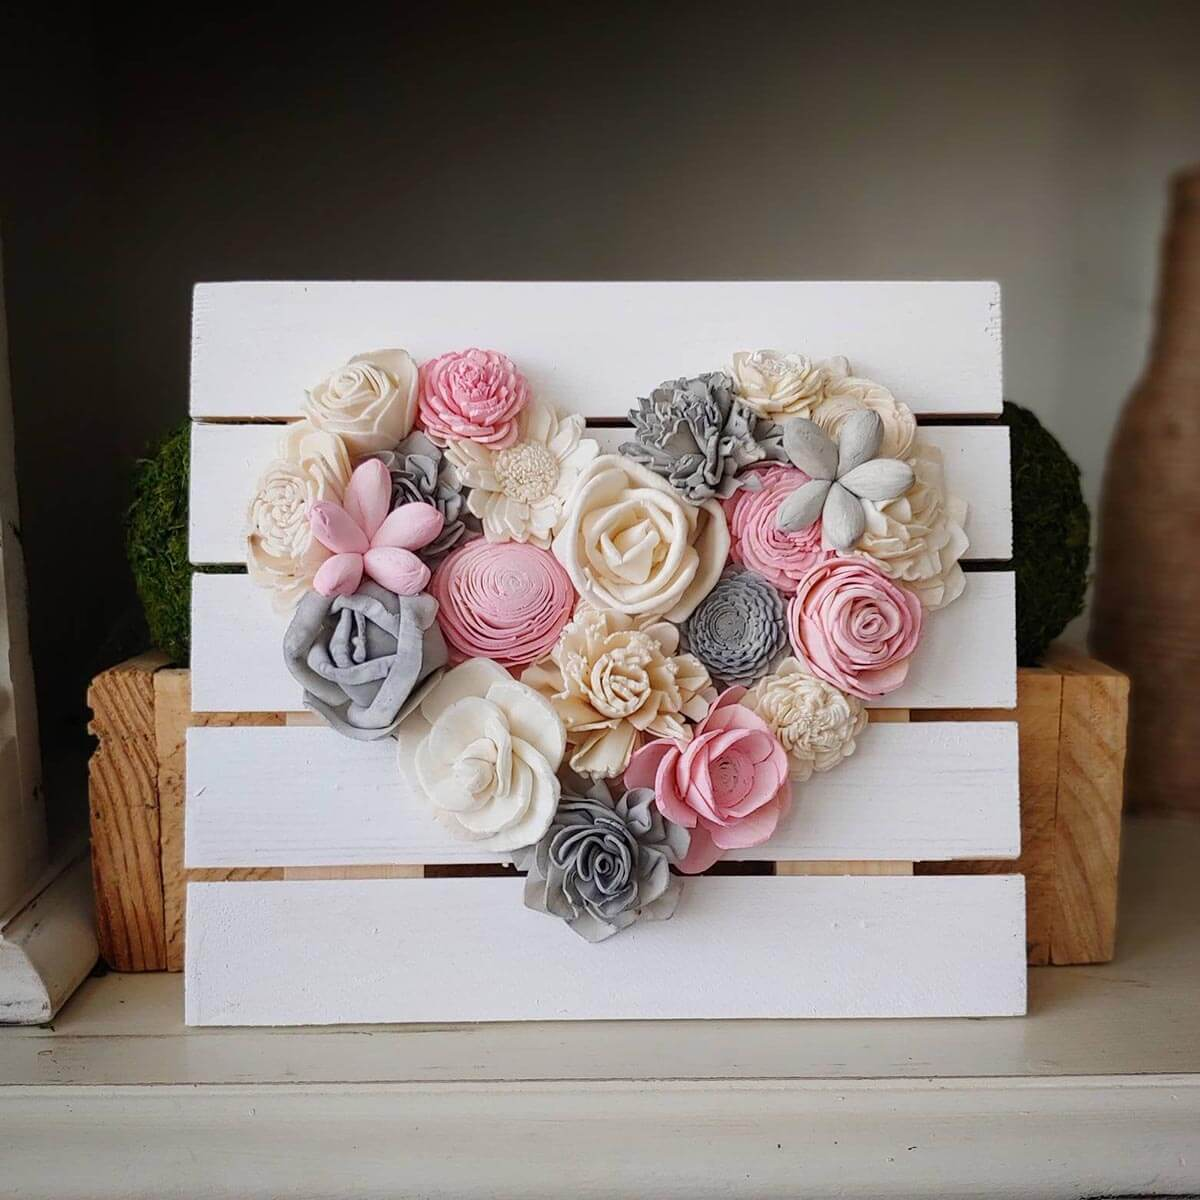 Heart of Wooden Flowers on Wooden Plaque